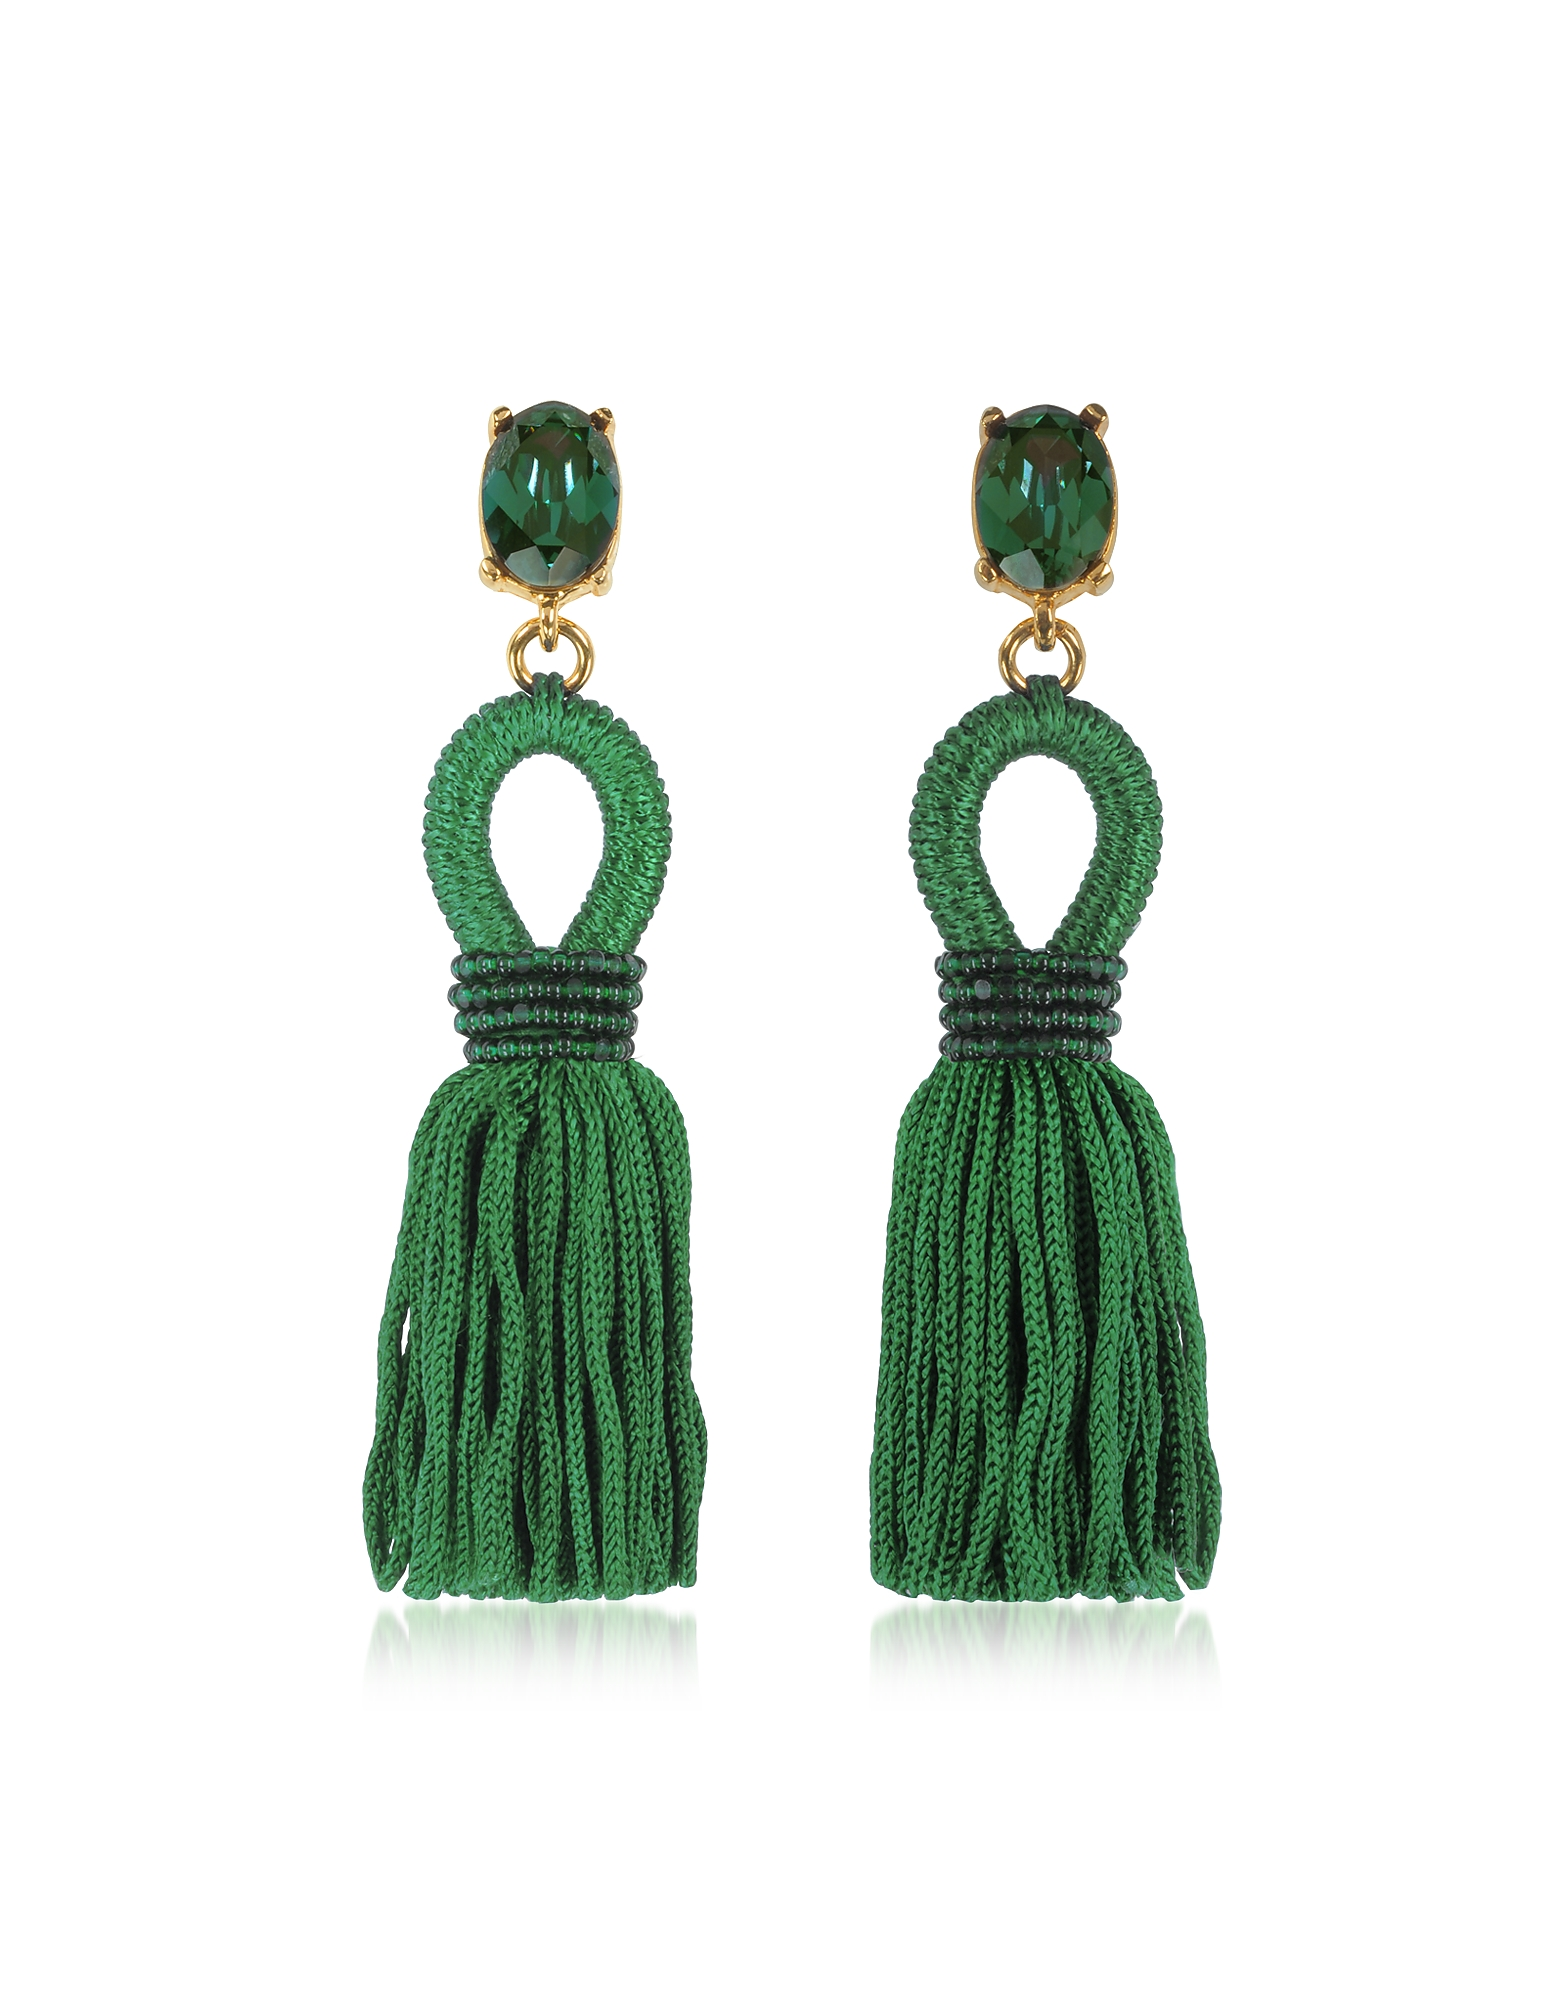 Oscar de la Renta Earrings, Short Silk Tassel Earrings